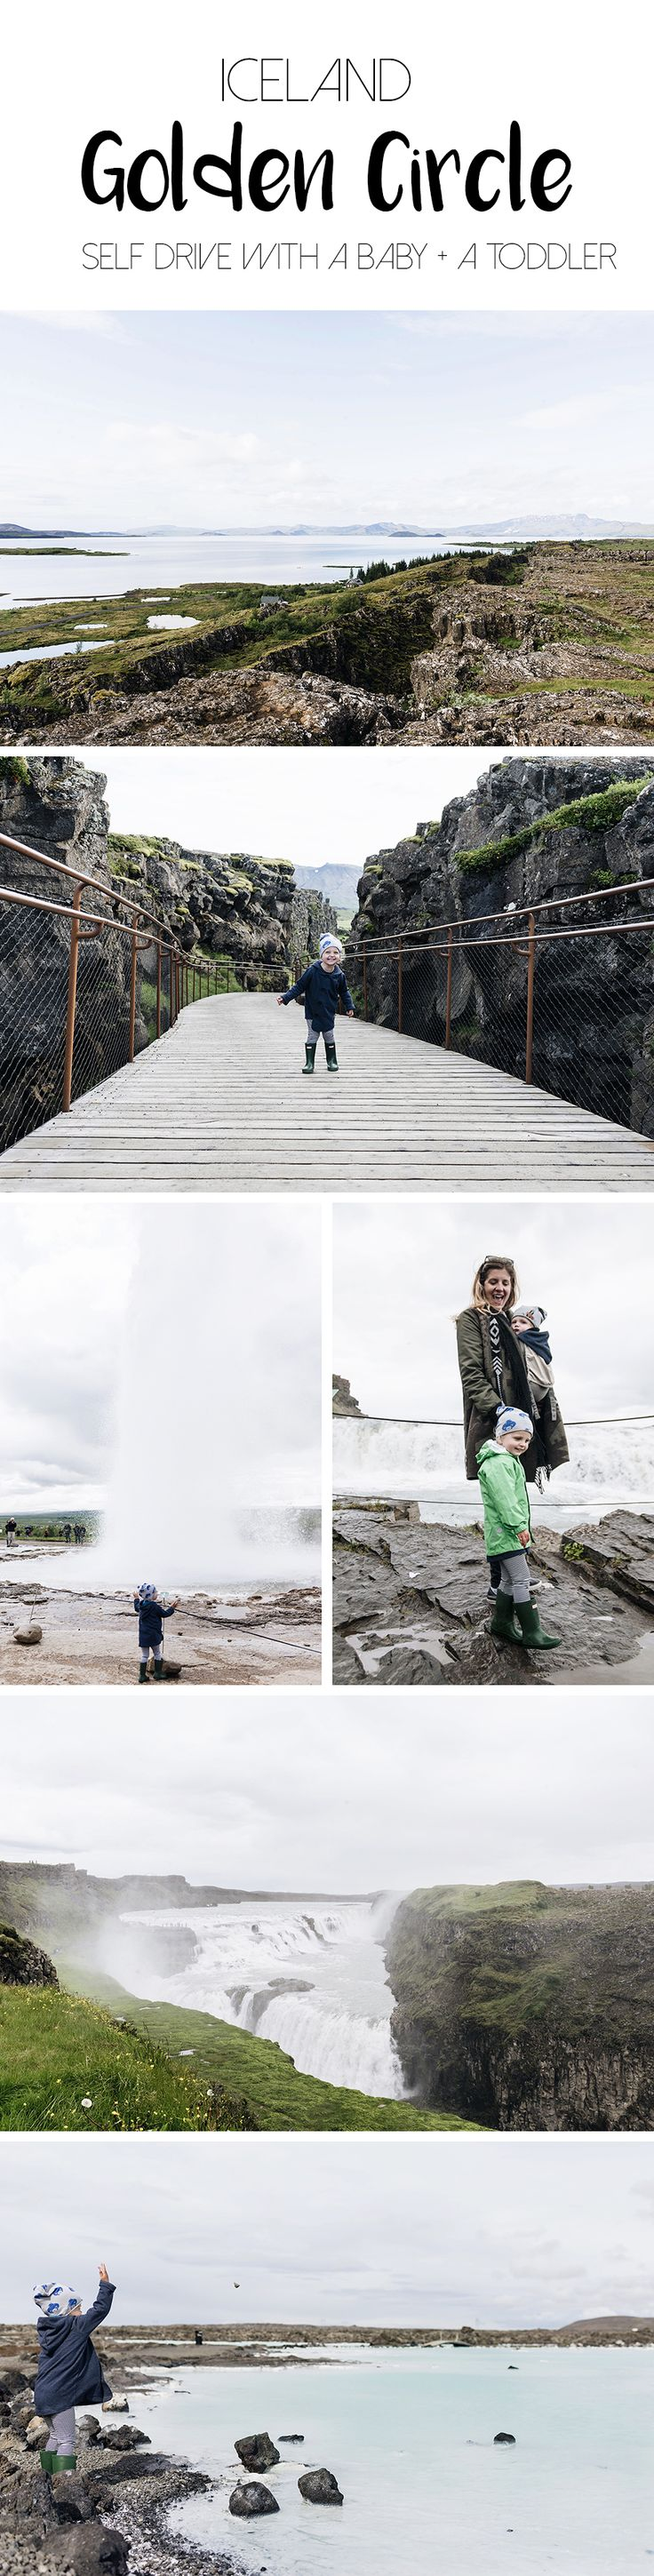 Iceland Golden Circle self drive with young kids - family travel with baby & toddler | Happy Grey Lucky